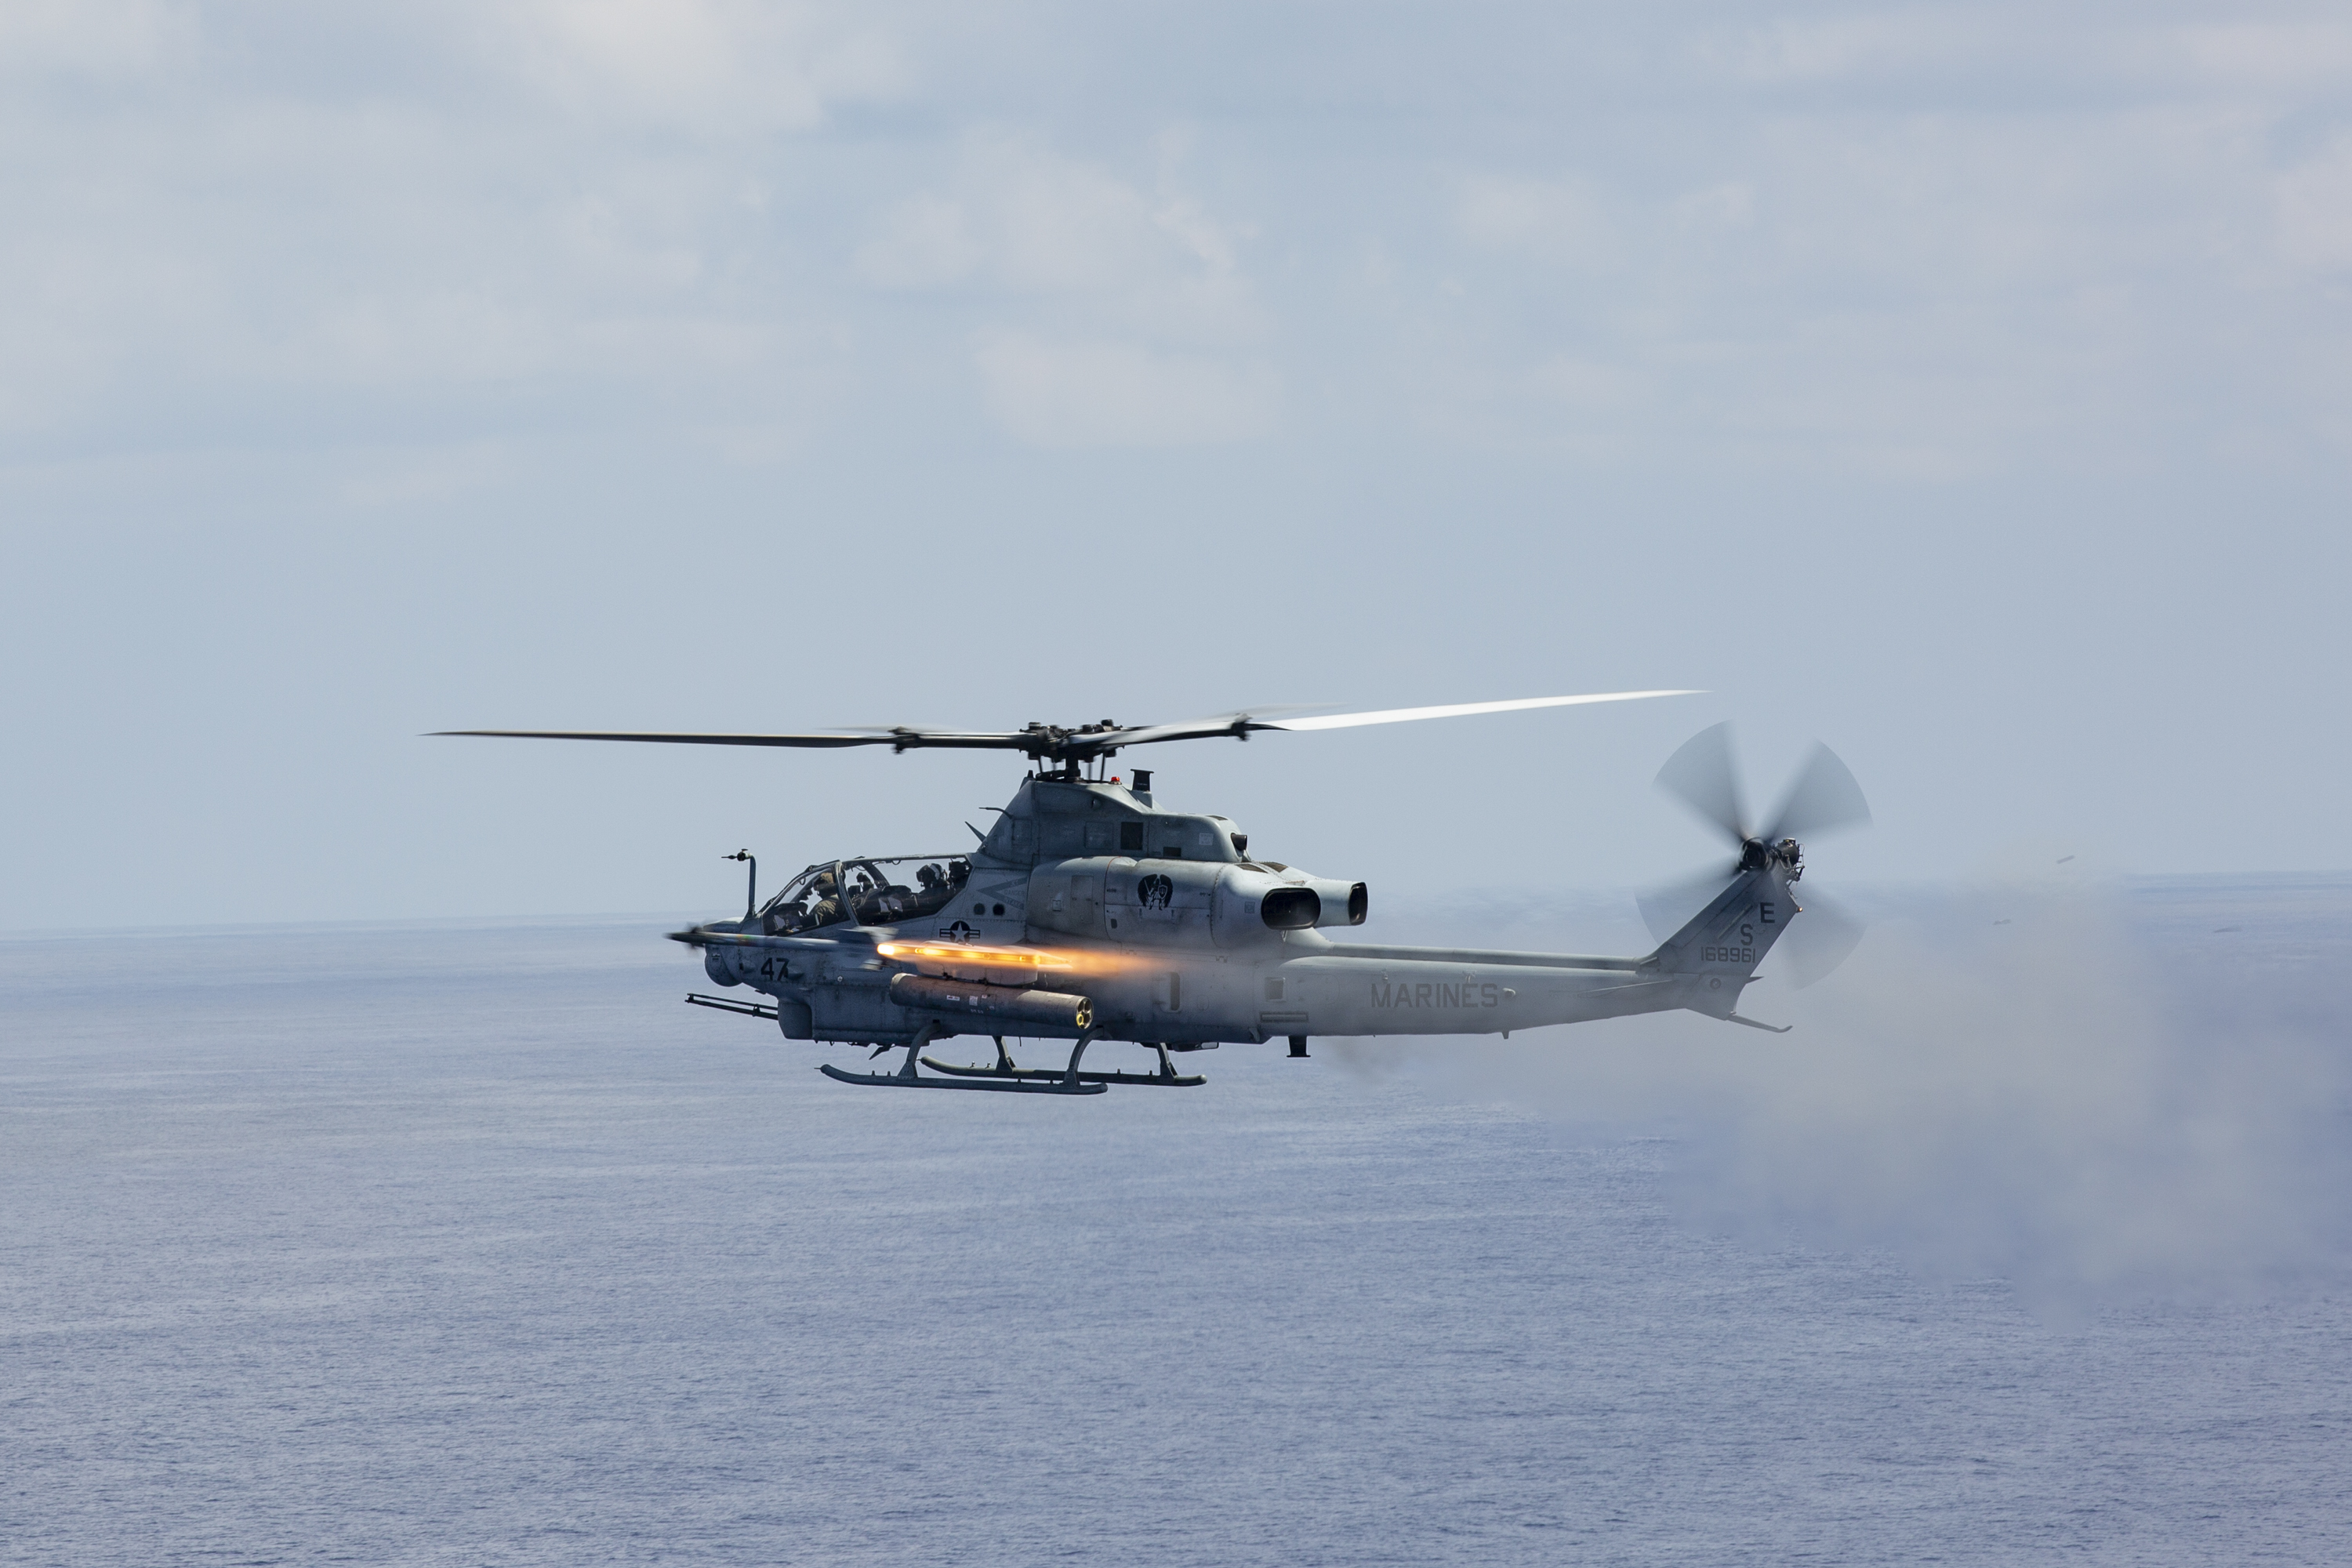 A U.S. Marine Corps AH-1Z Viper helicopter, with Marine Light Attack Helicopter Squadron (HMLA) 469, fires an Air Intercept Missile (AIM-9 Sidewinder missile) during a live-fire training event near Okinawa, Japan, Sept. 29, 2020. HMLA-469 conducted a live-fire exercise using AIM-9 Sidewinder missiles to improve proficiency with the weapon system. (U.S. Marine Corps photo by Cpl. Ethan M. LeBlanc)